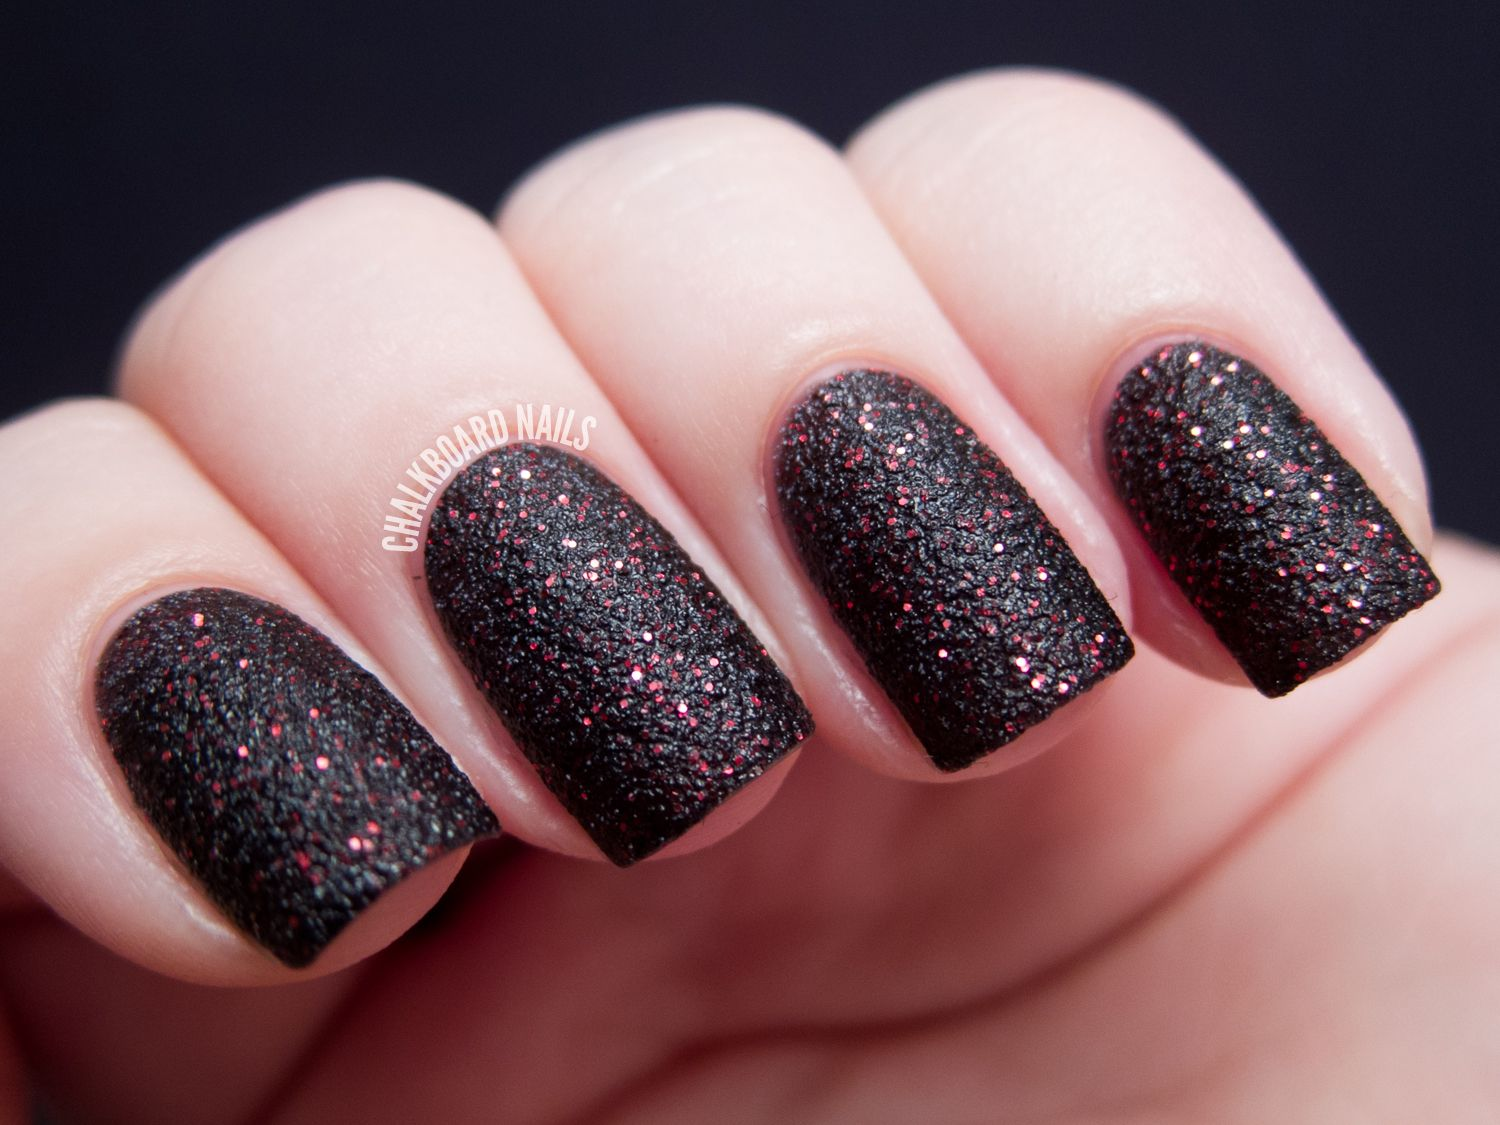 General Black Gothic Nail Design Ideas With Slightly